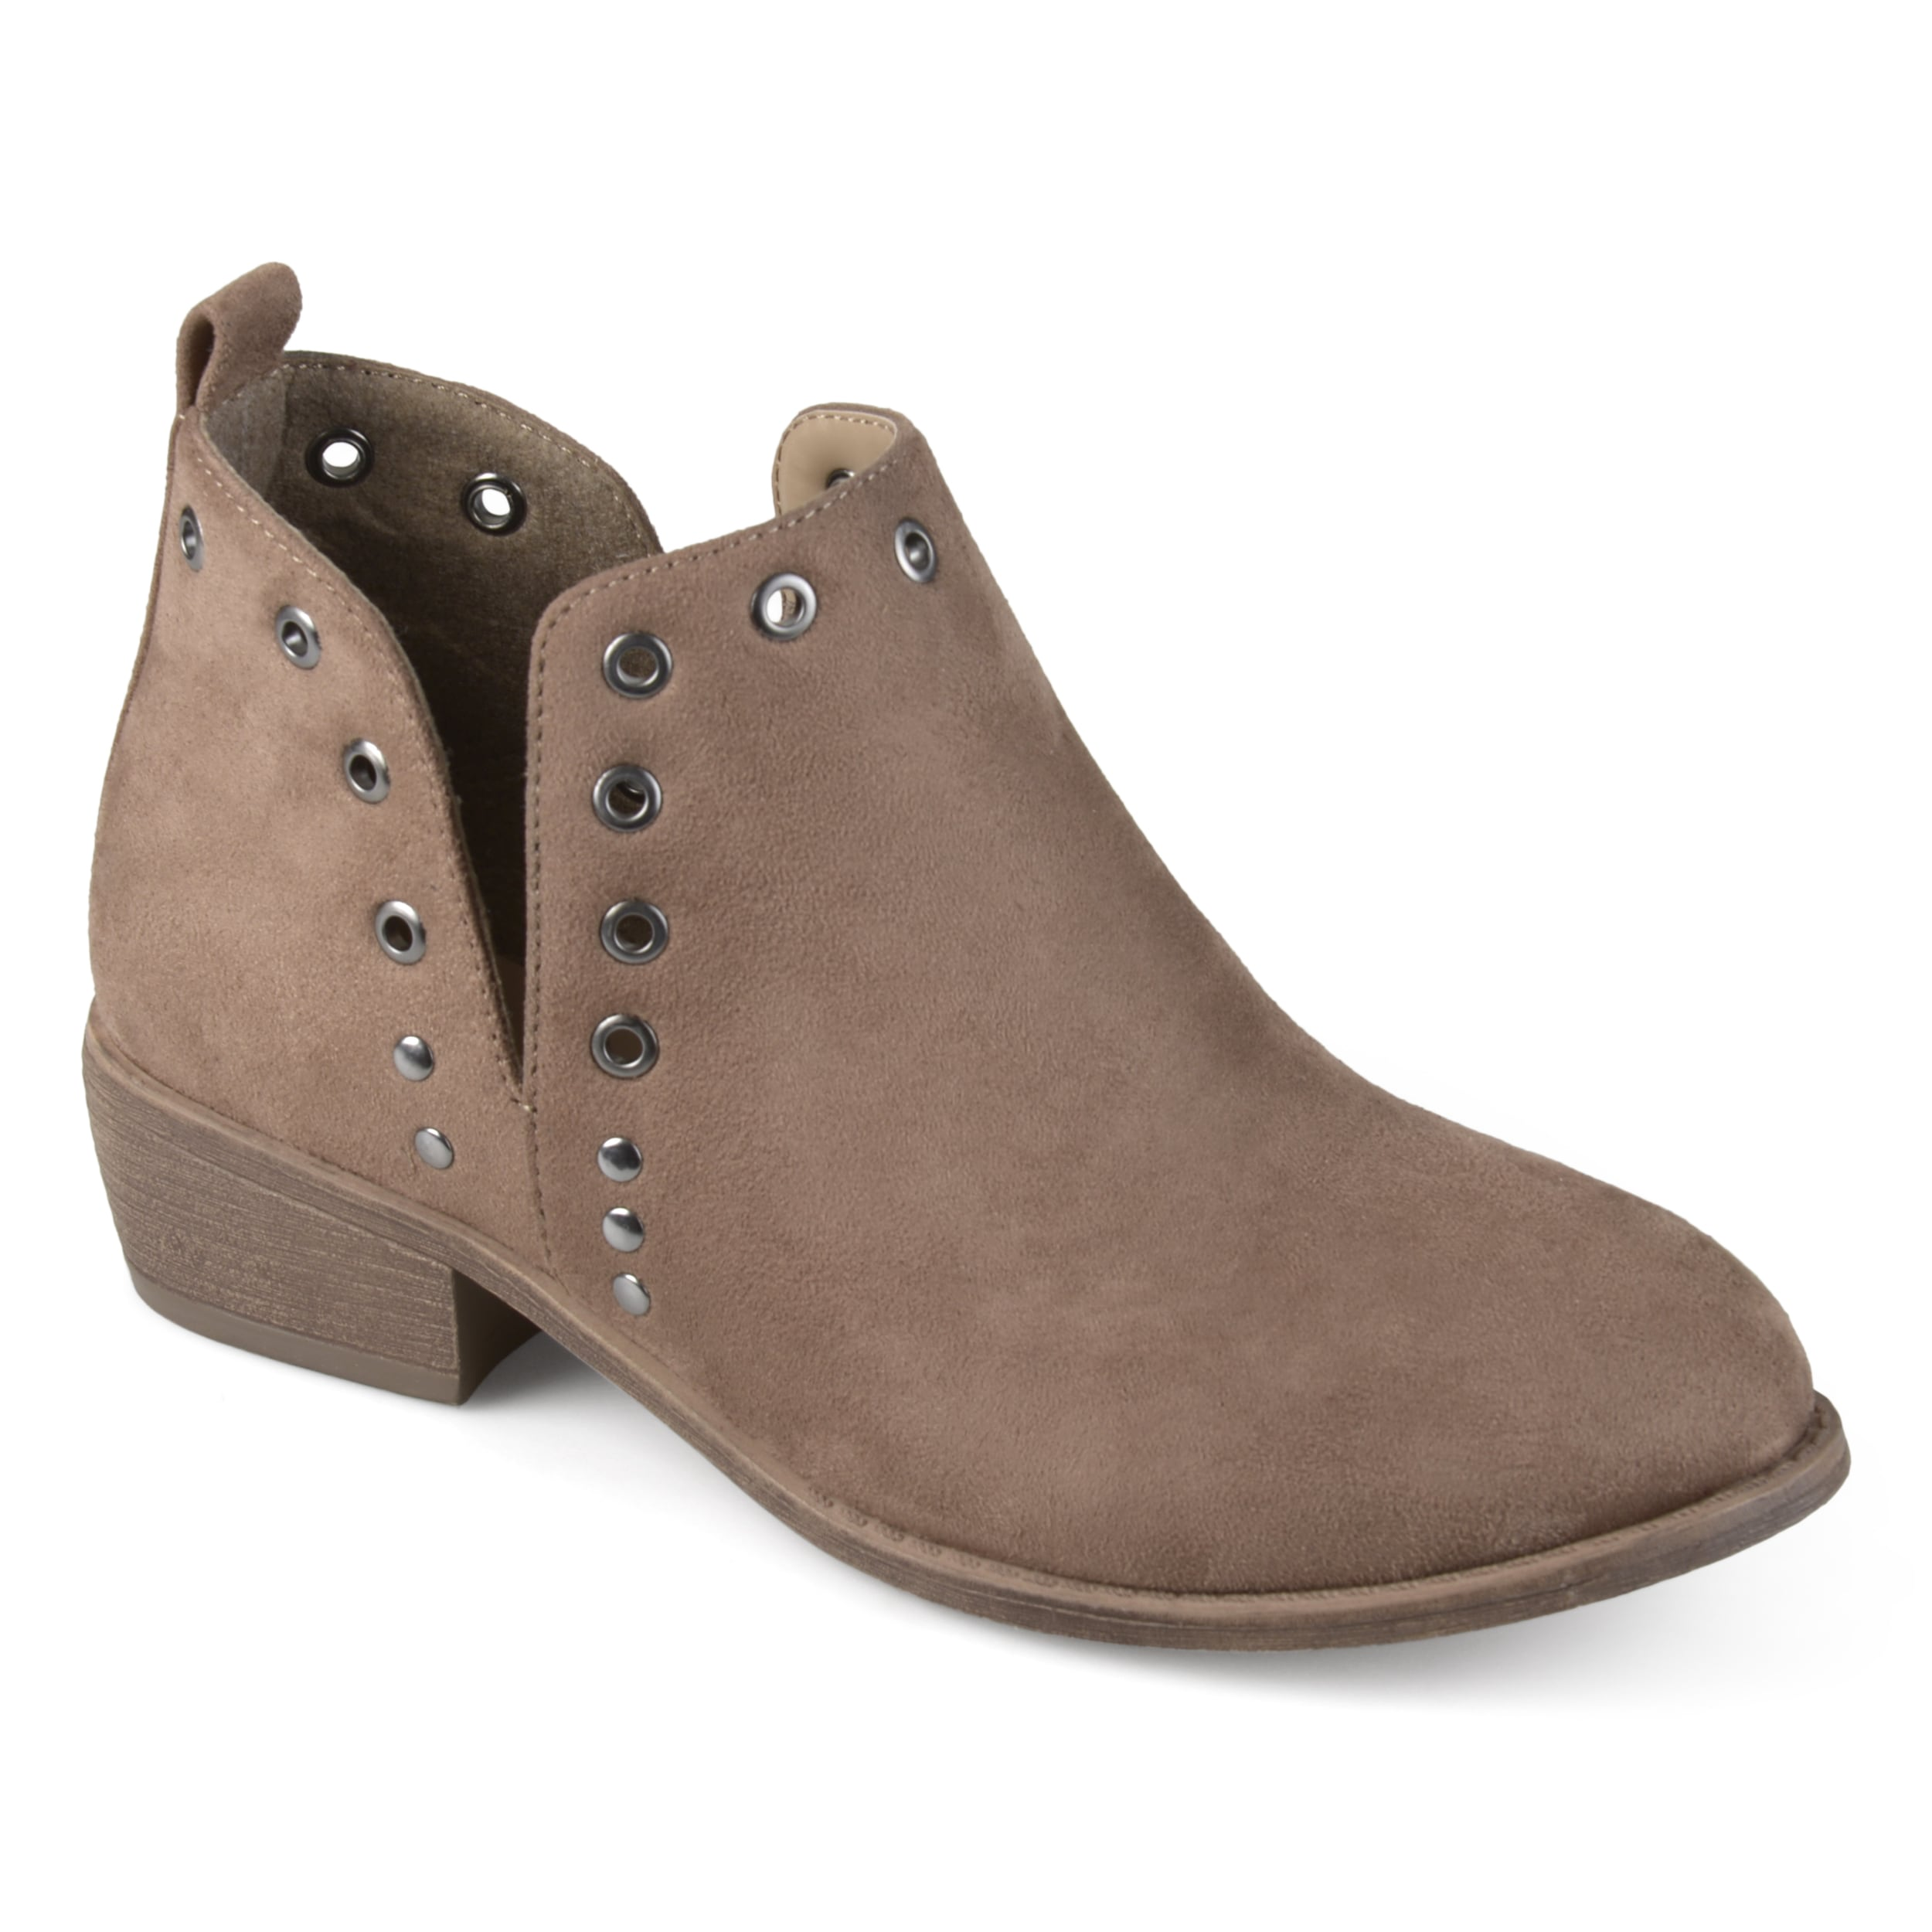 3bdf7711af83 Shop Journee Collection Women s  Firth  Side Slit Stud Booties - On Sale -  Free Shipping Today - Overstock - 15888622